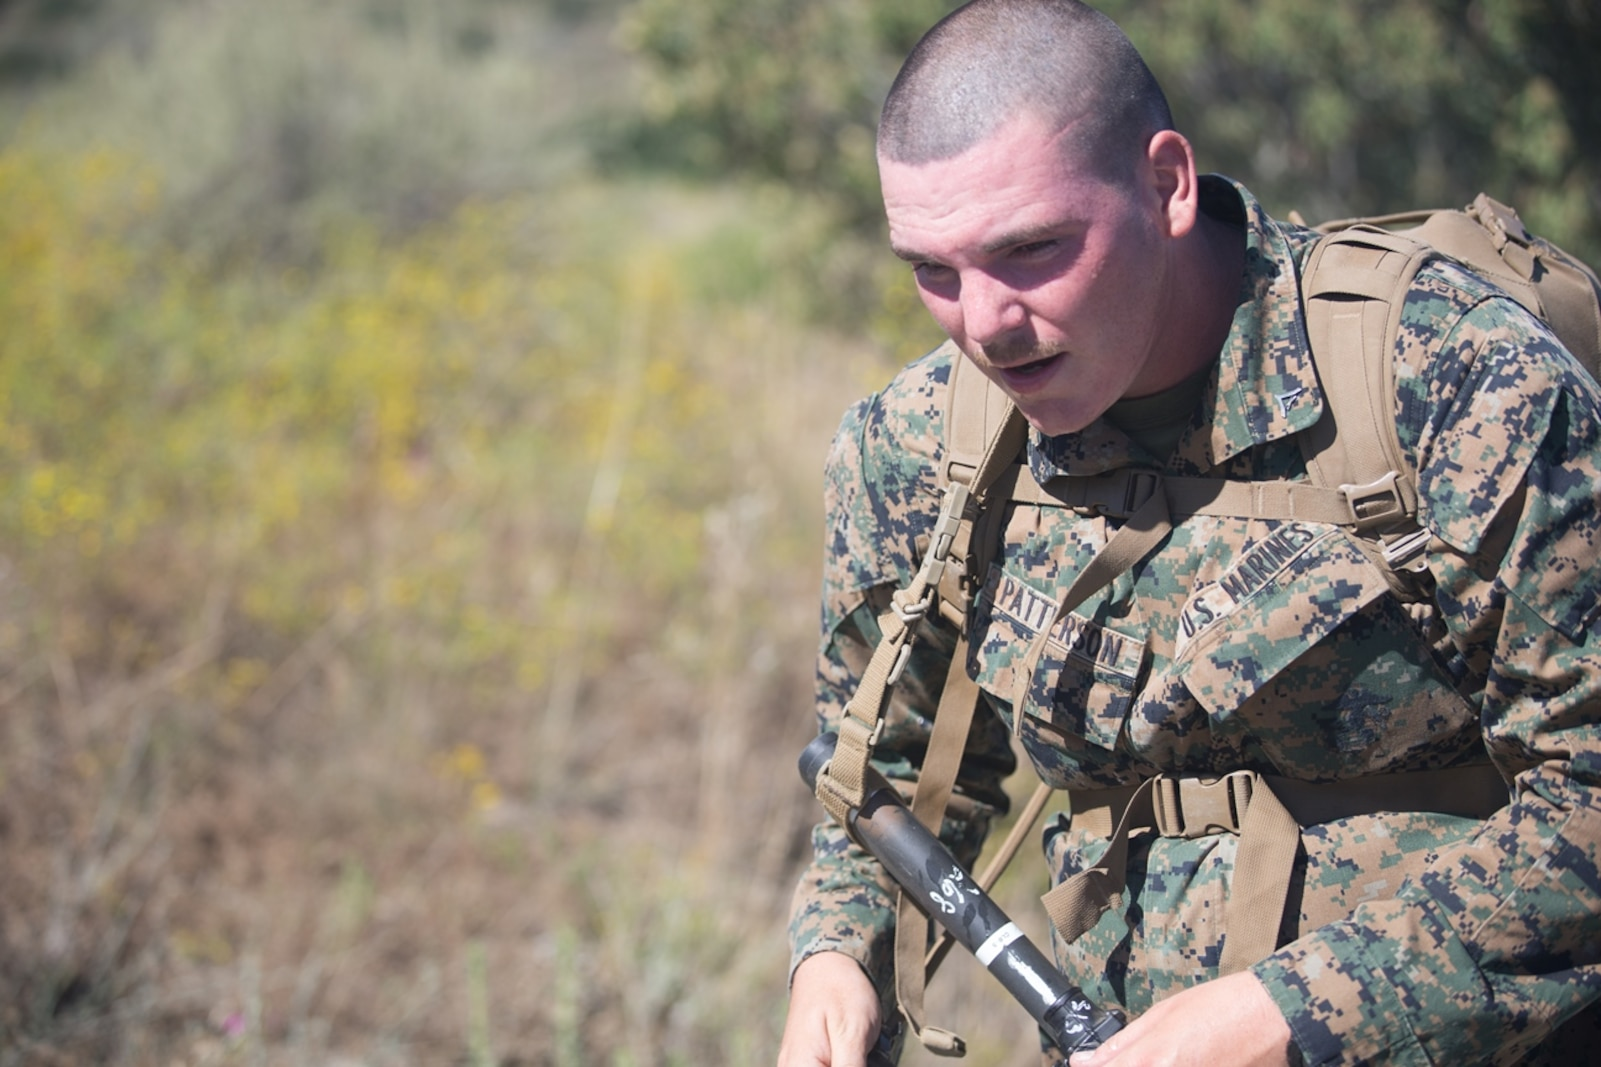 U.S. Marine Lance Cpl. Scott Patterson, an electronics maintainer with Combat Logistics Battalion 5, Headquarters Regiment, 1st Marine Logistics Group participates in a conditioning hike on Camp Pendleton, Calif., June 27, 2017. The Marines have multiple conditioning hikes to prepare for Mountain Exercise 4-17 which will be conducted at the Marine Corps Mountain Warfare Training Center in Bridgeport, Calif. (U.S. Marine Corps photo by Lance Cpl. Timothy Shoemaker)